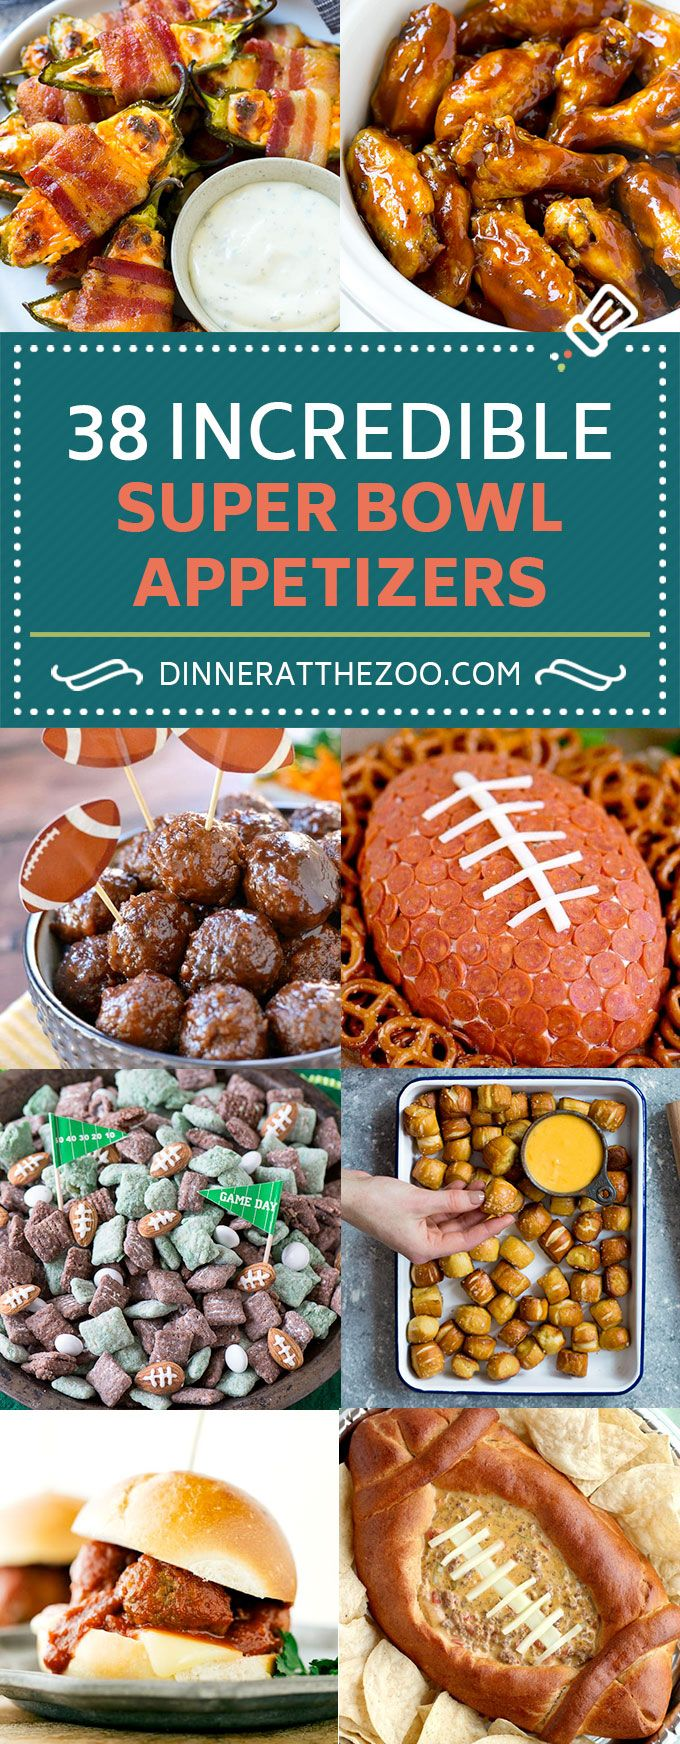 38 super bowl appetizer recipes best food blogger photos and 38 super bowl appetizer recipes best food blogger photos and recipes pinterest forumfinder Gallery